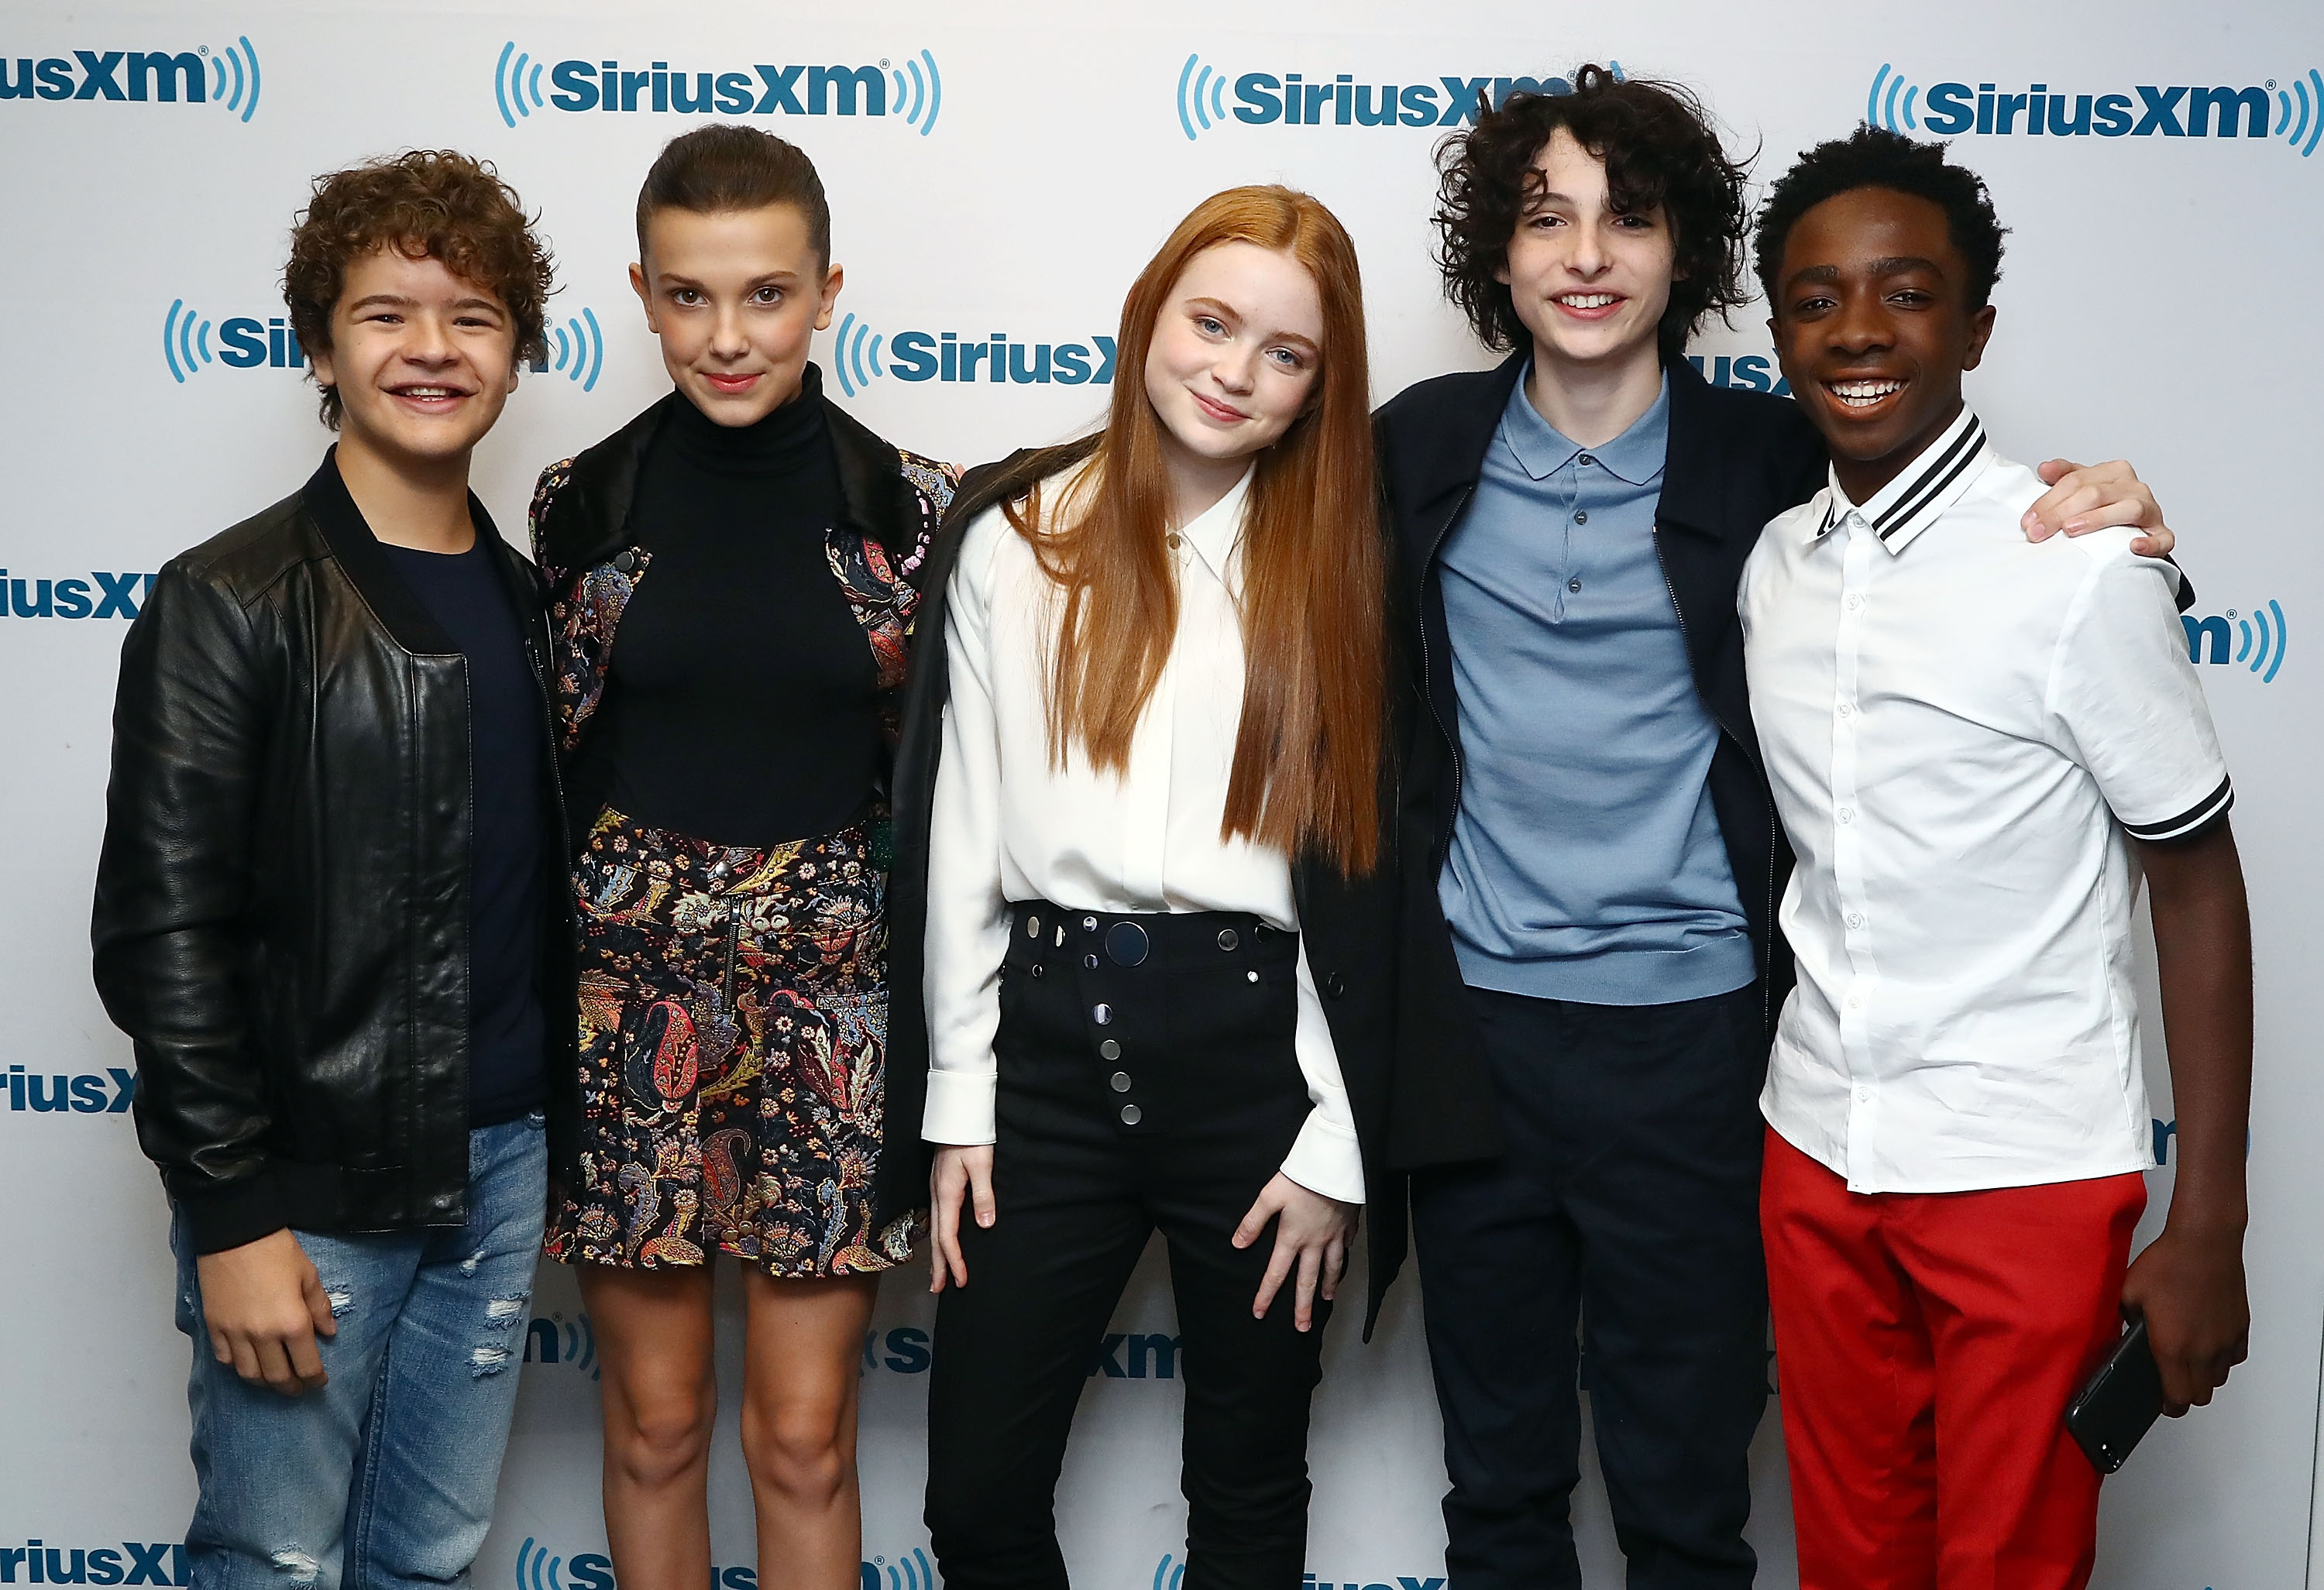 (L-R) Actors Gaten Matarazzo, Millie Bobby Brown, Sadie Sink, Finn Wolfhard and Caleb McLaughlin attend SiriusXM's 'Town Hall' cast of Stranger Things on SiriusXM's Entertainment Weekly Radio on November 1, 2017 in New York City. (Getty Images)